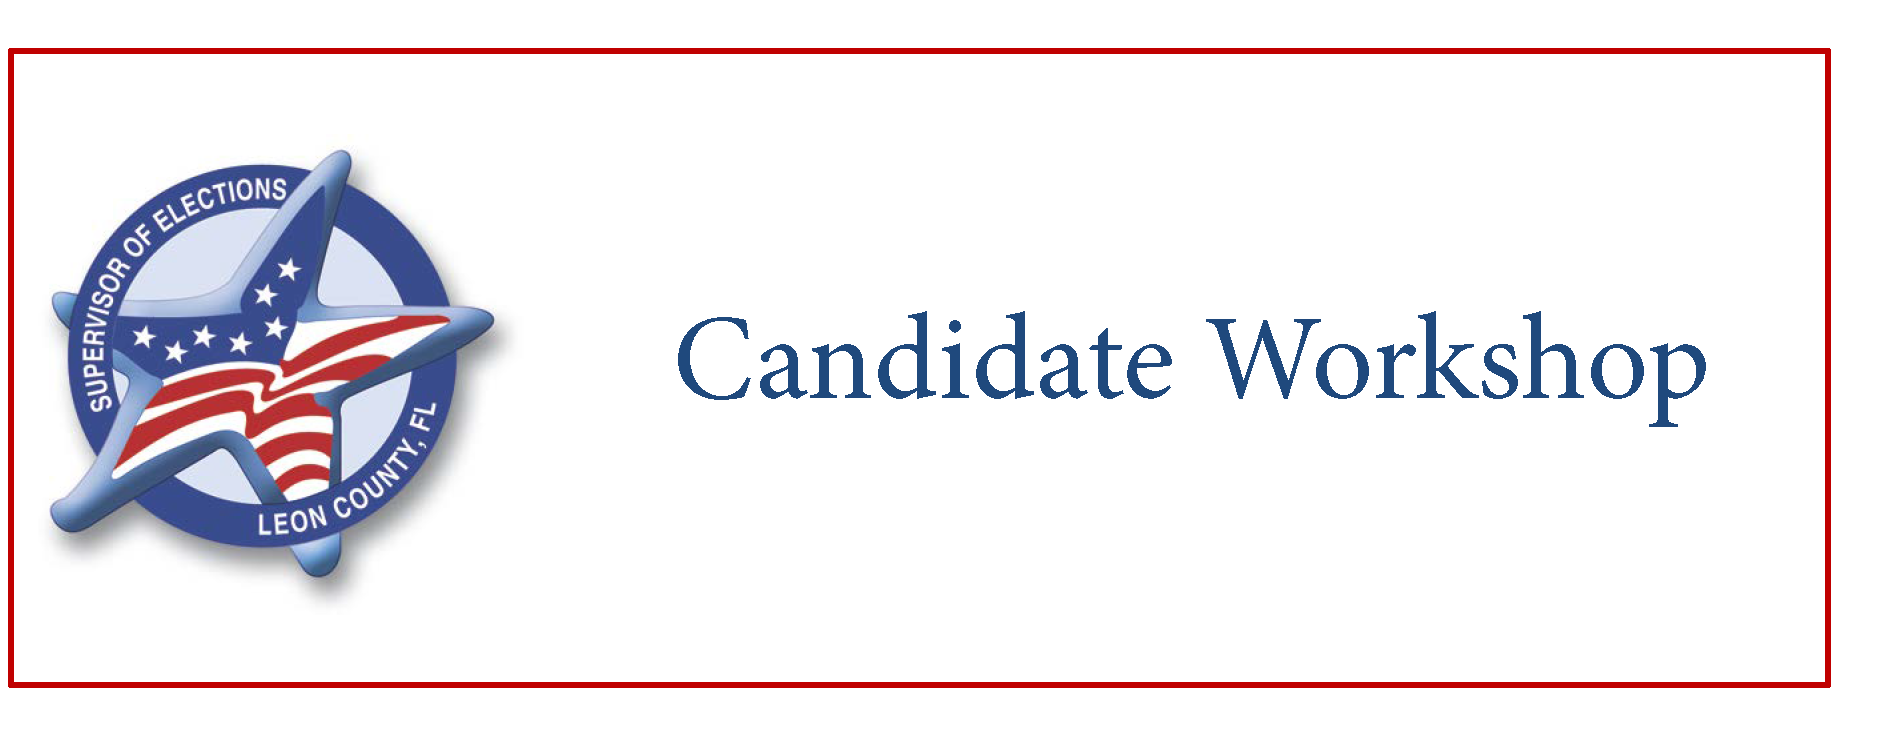 Candidate Workshop Link